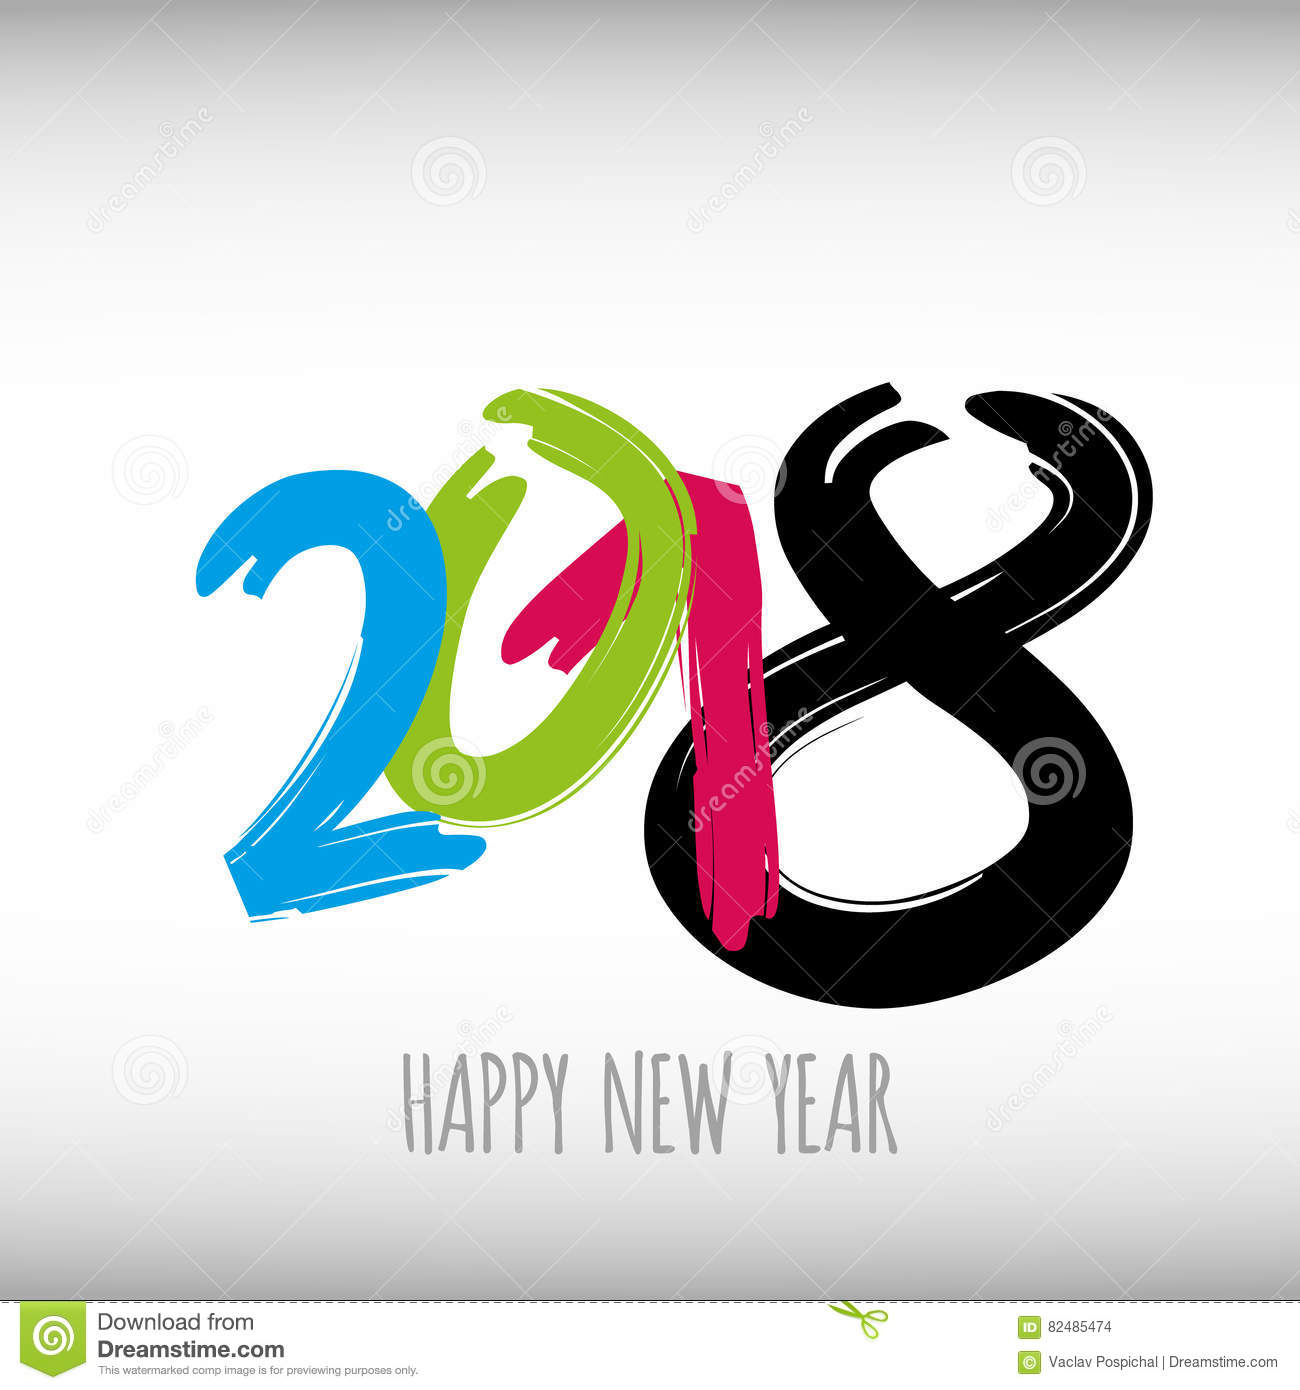 Vector modern minimalistic Happy new year card for 2018 with main big numbers - light version